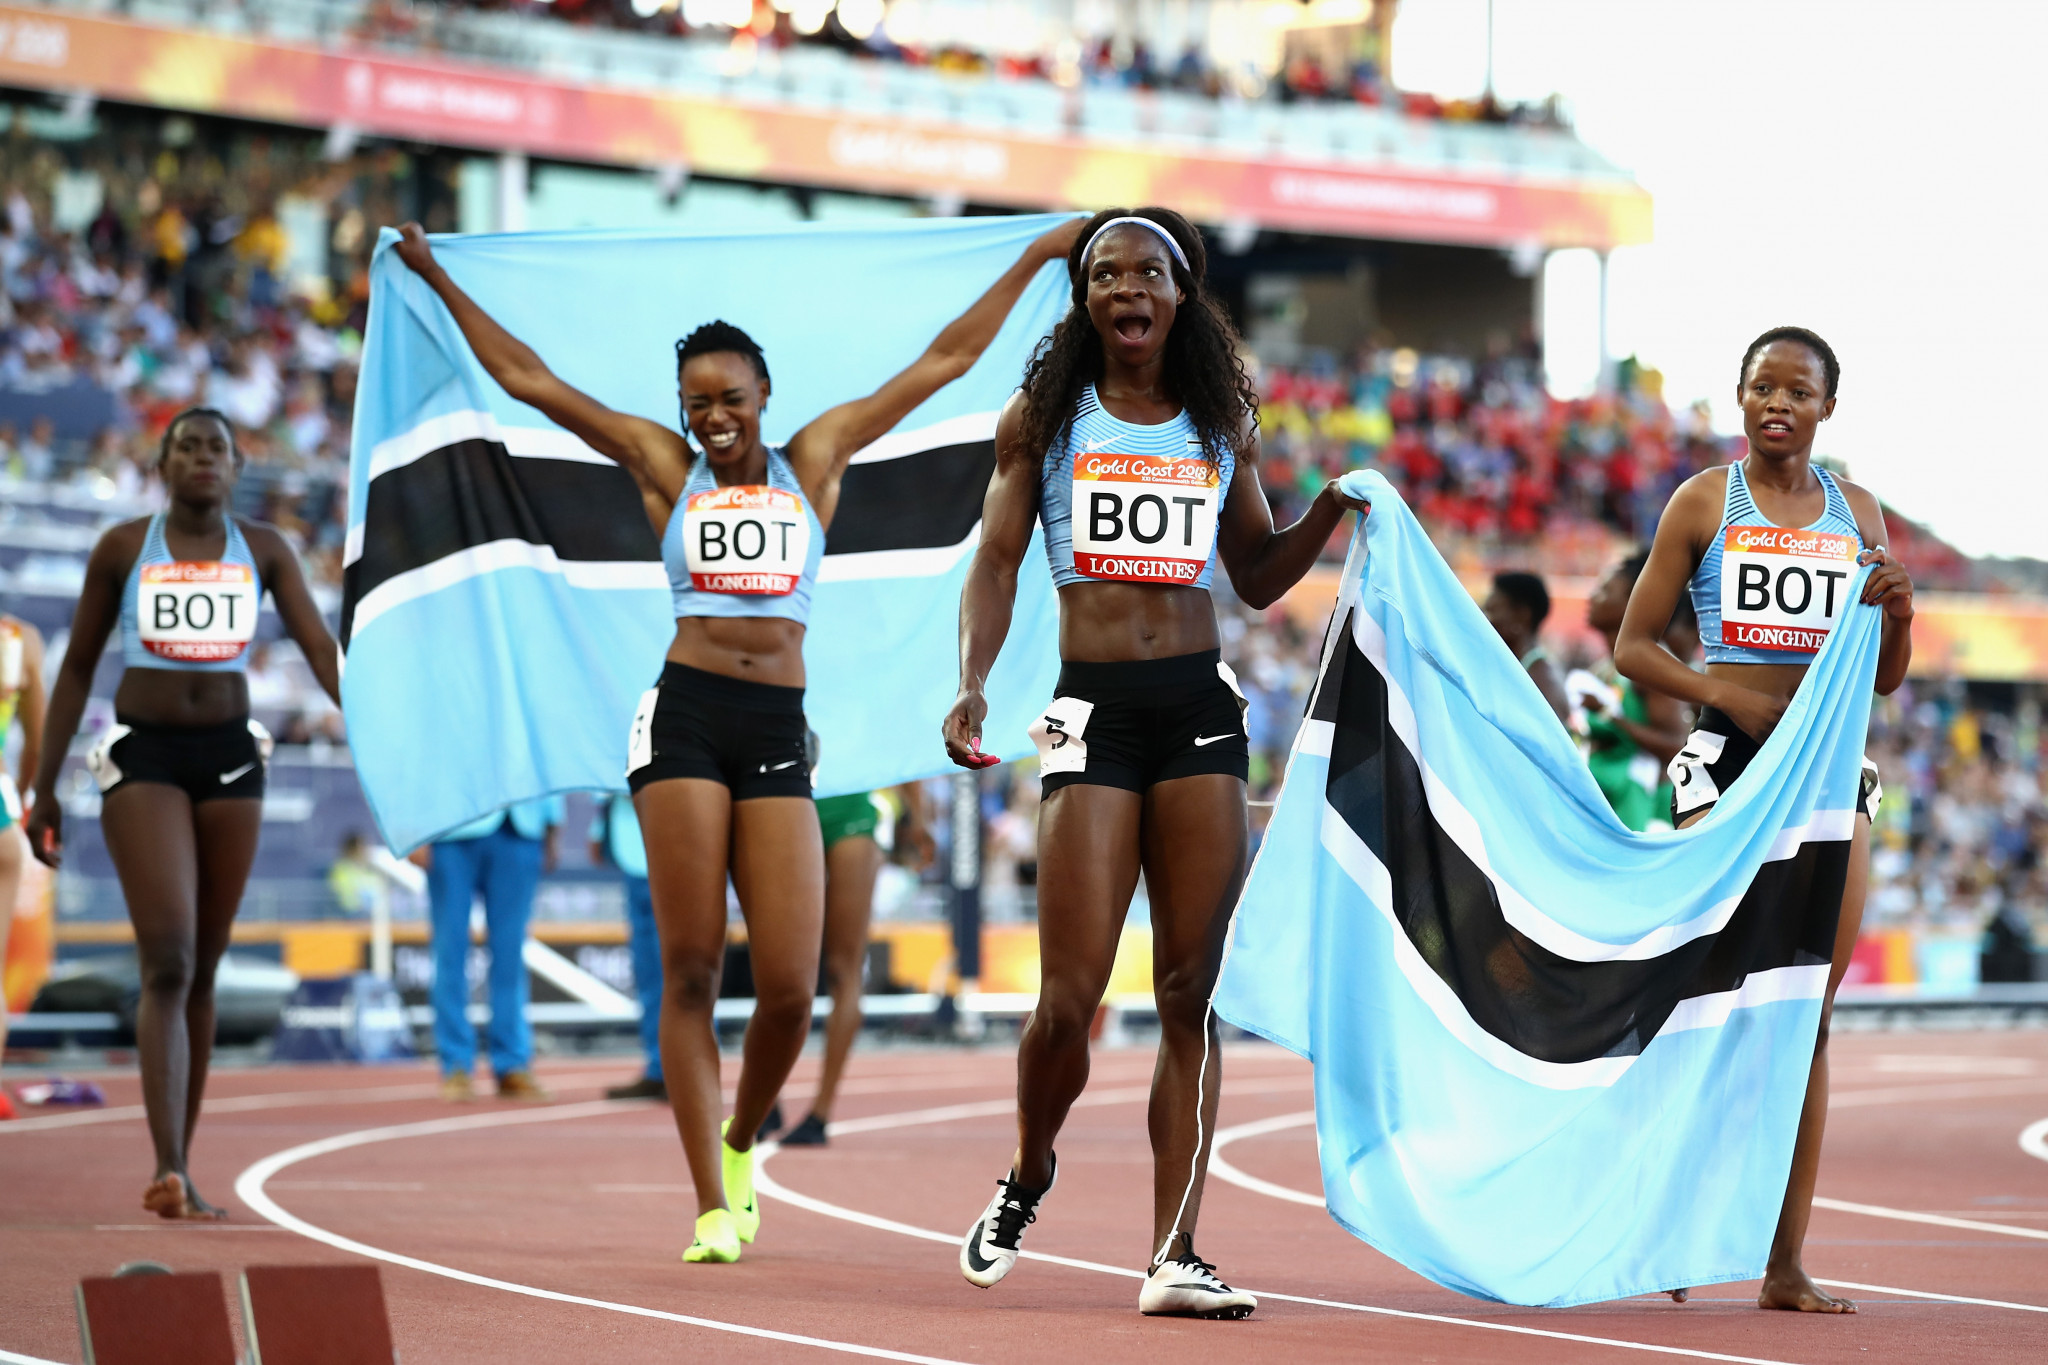 Botswana National Olympic Committee revises Tokyo 2020 medal target due to COVID-19